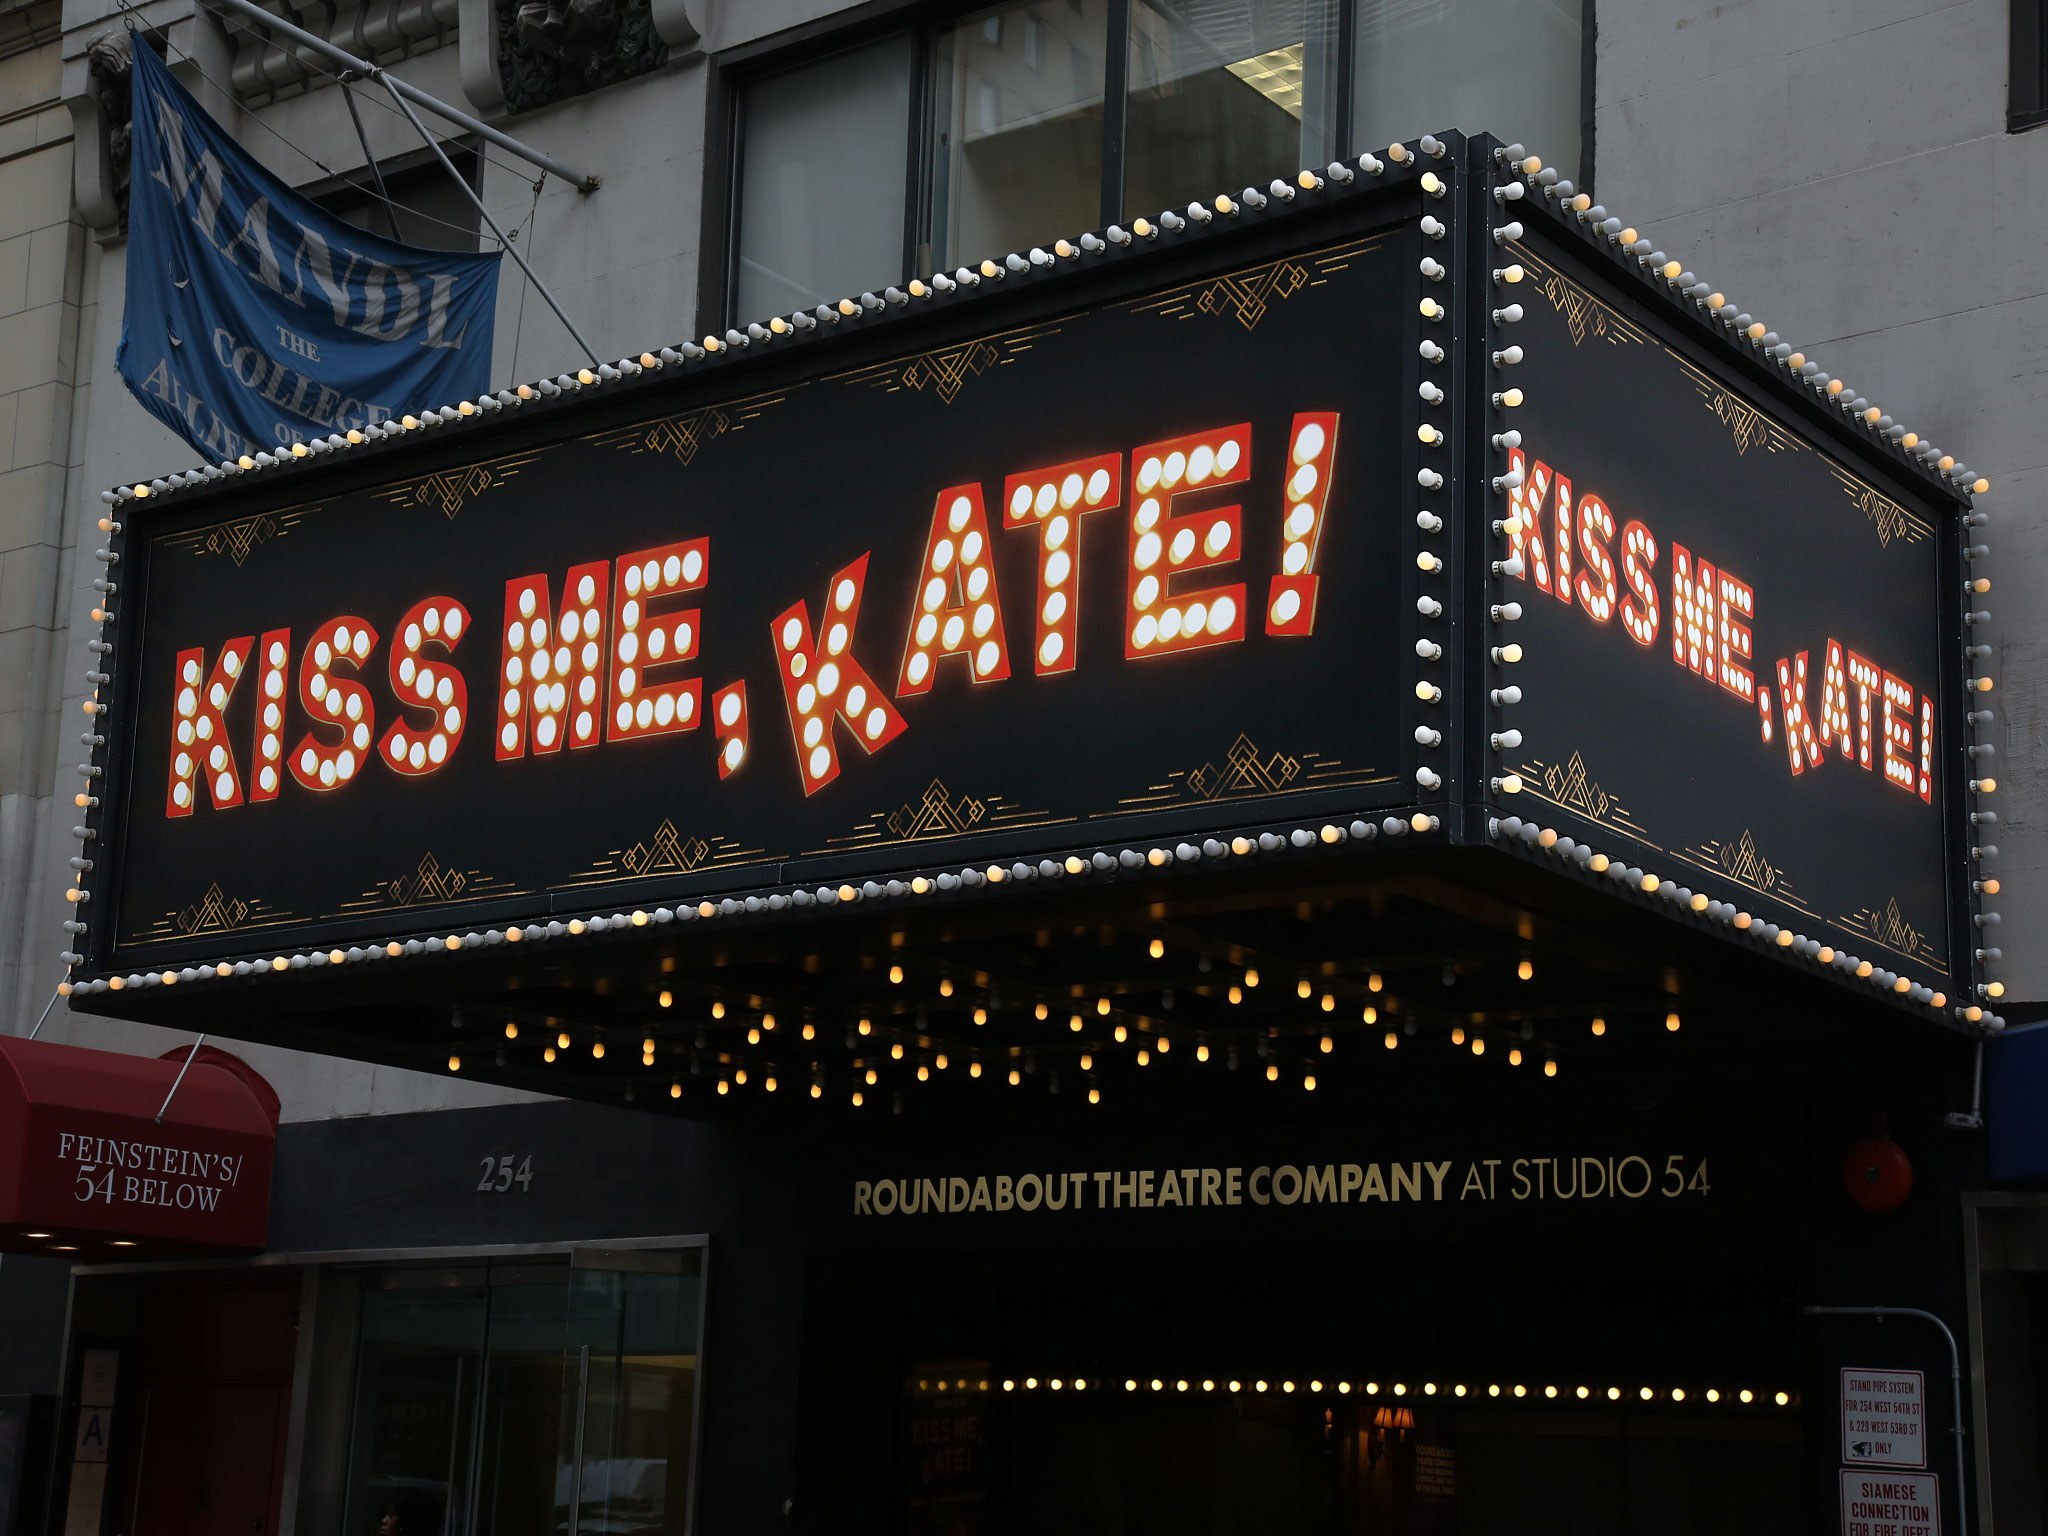 Kiss Me Kate at Studio 54 Theatre